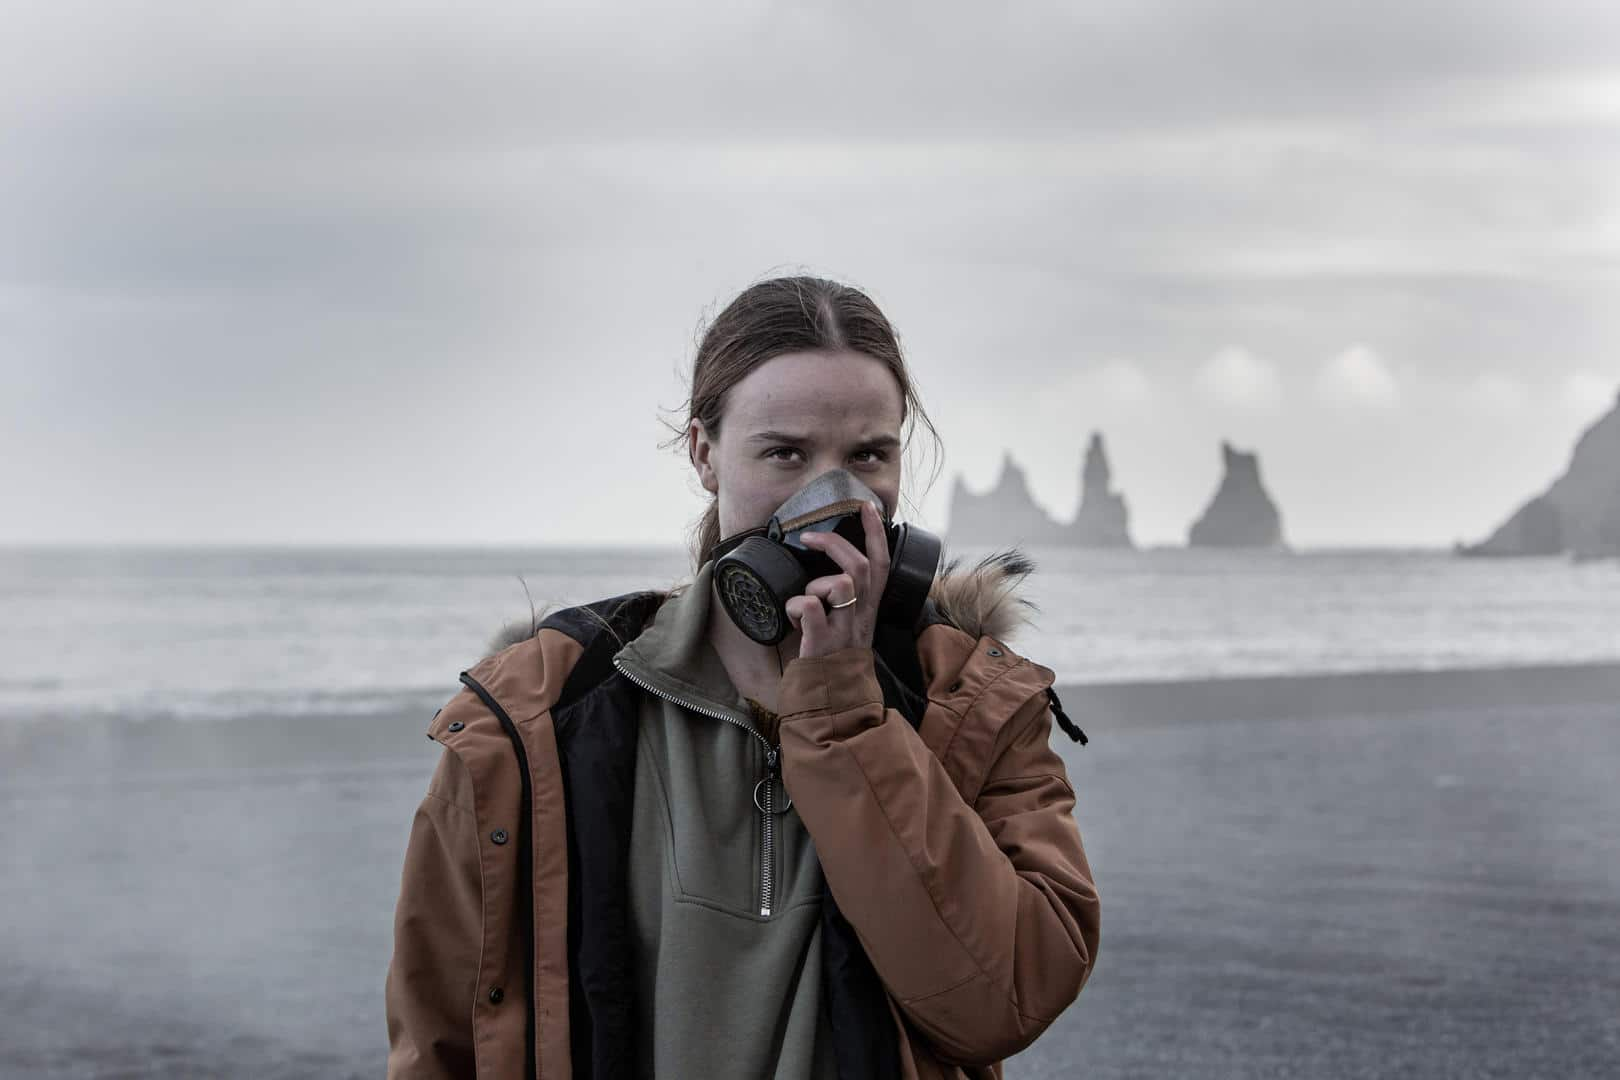 Netflix Gives First Glimpses of Upcoming Icelandic Series Katla